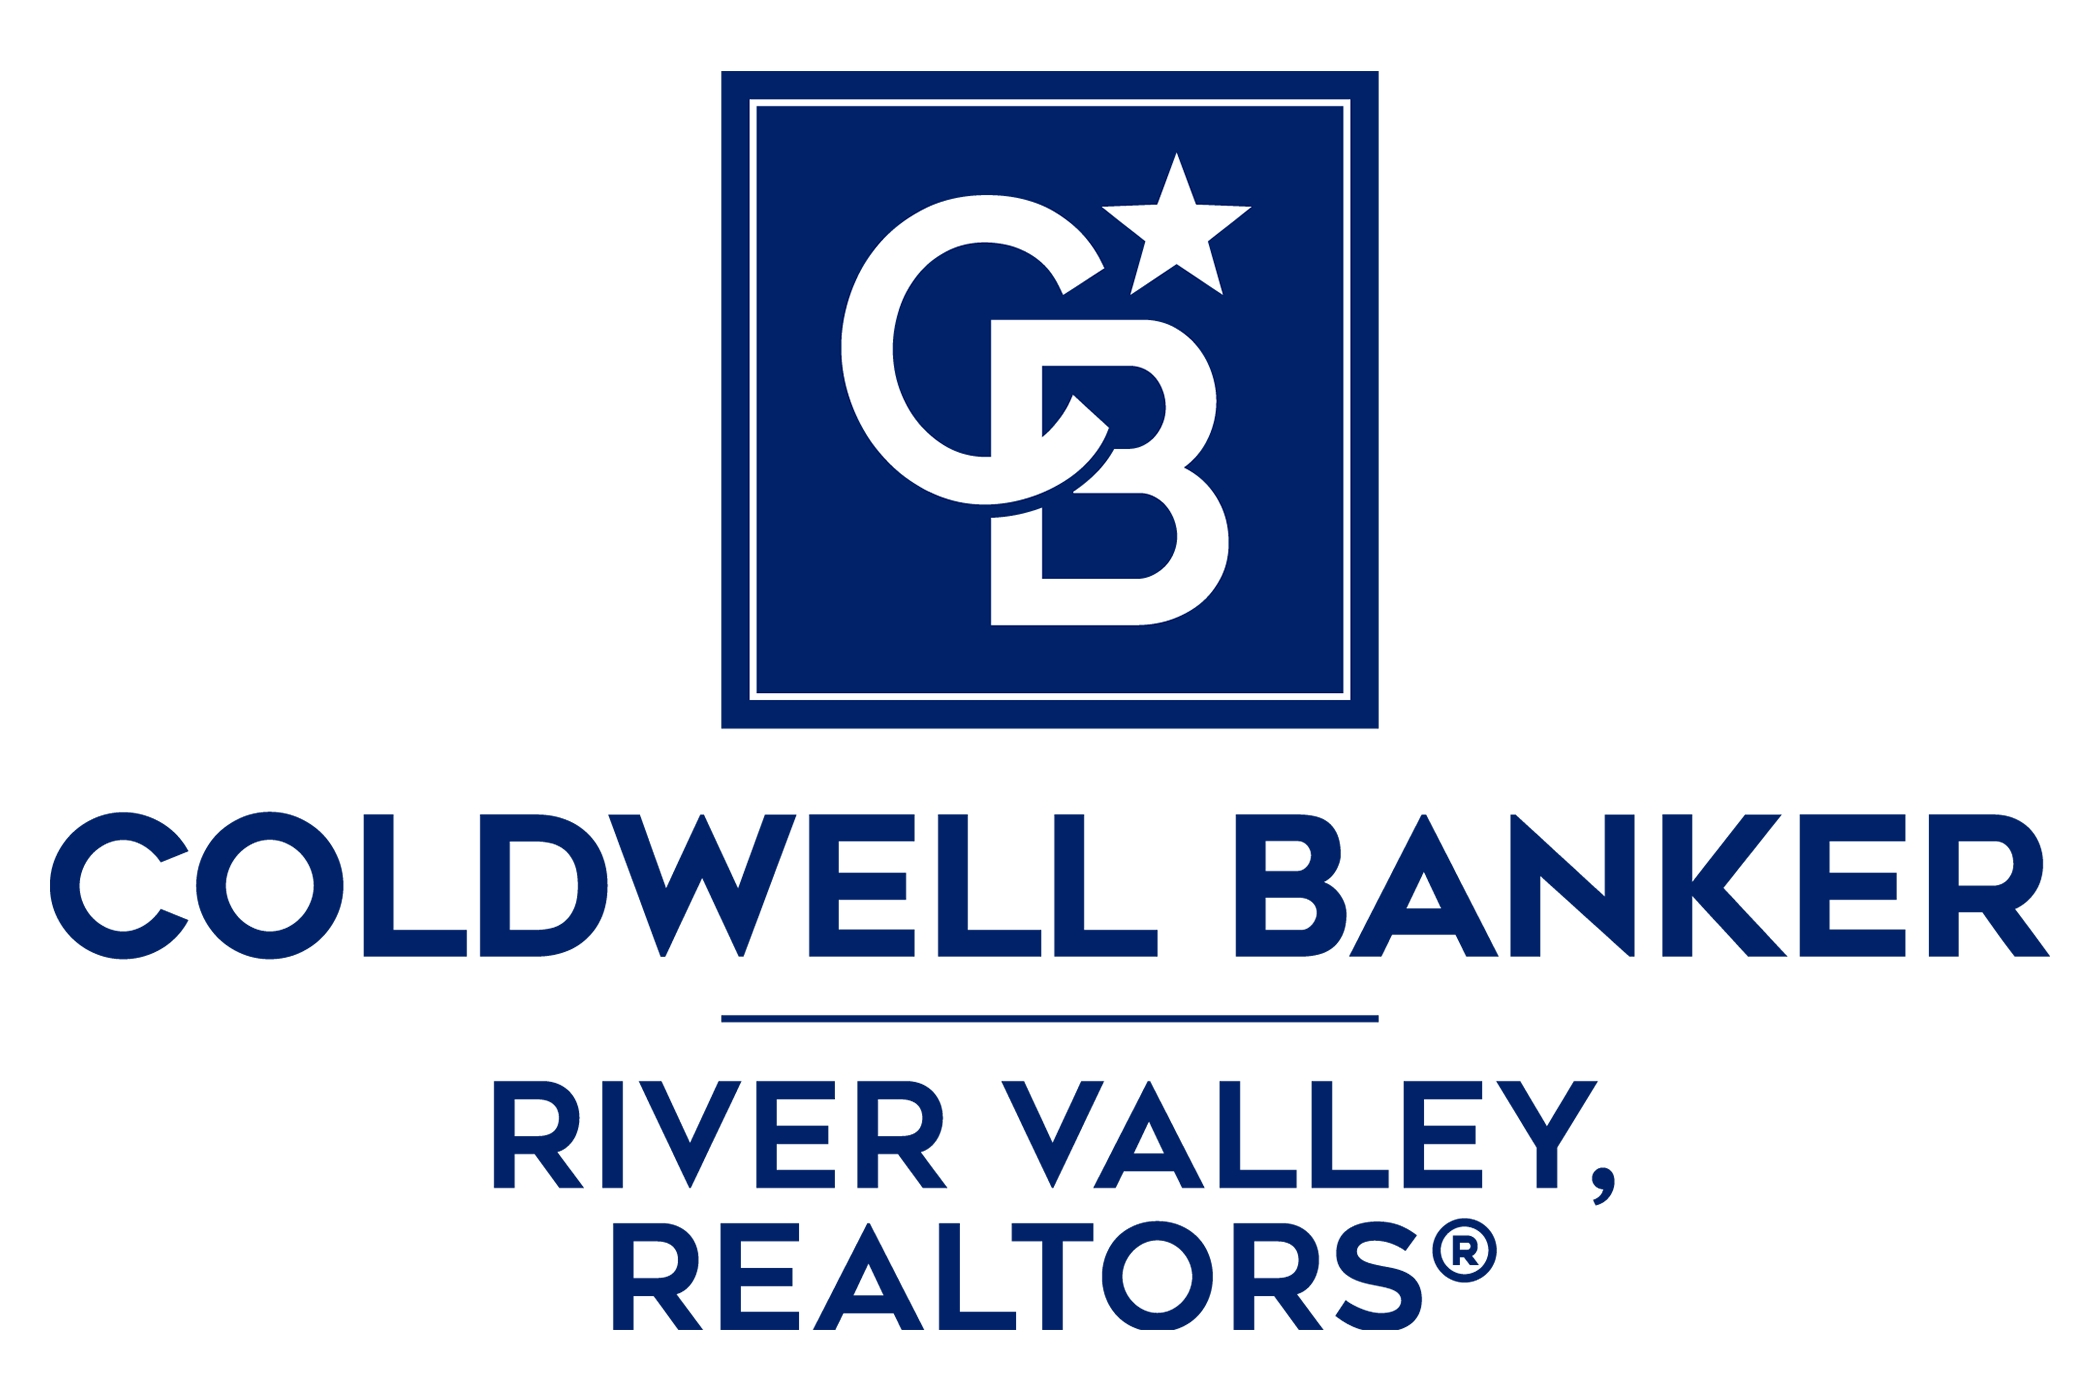 Rich Hall - Coldwell Banker River Valley Realtors